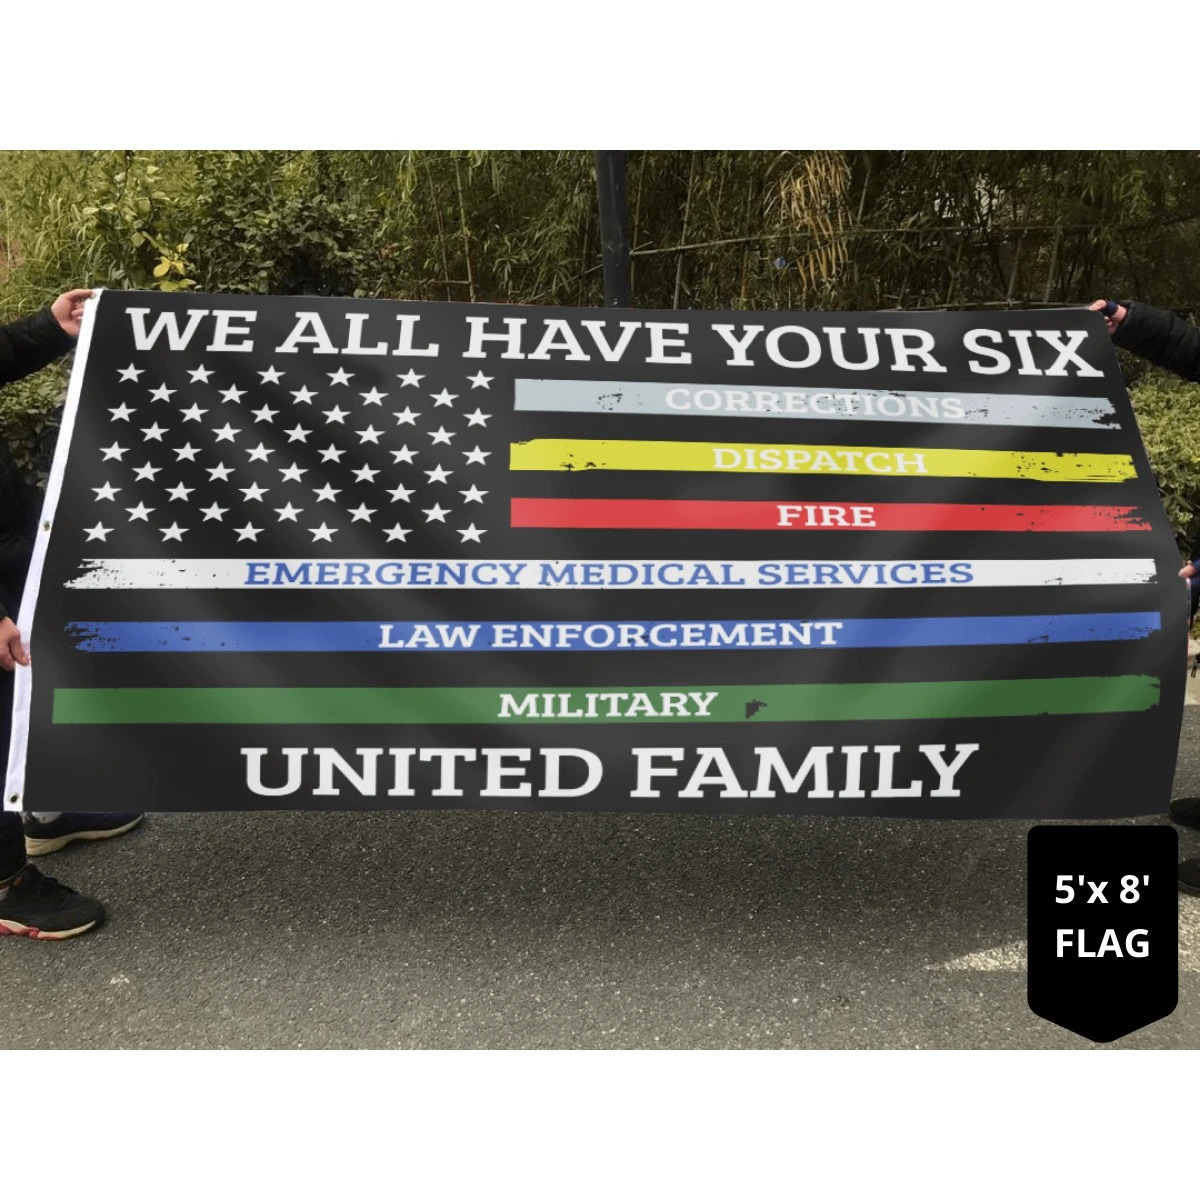 We all have your six united family flag 2